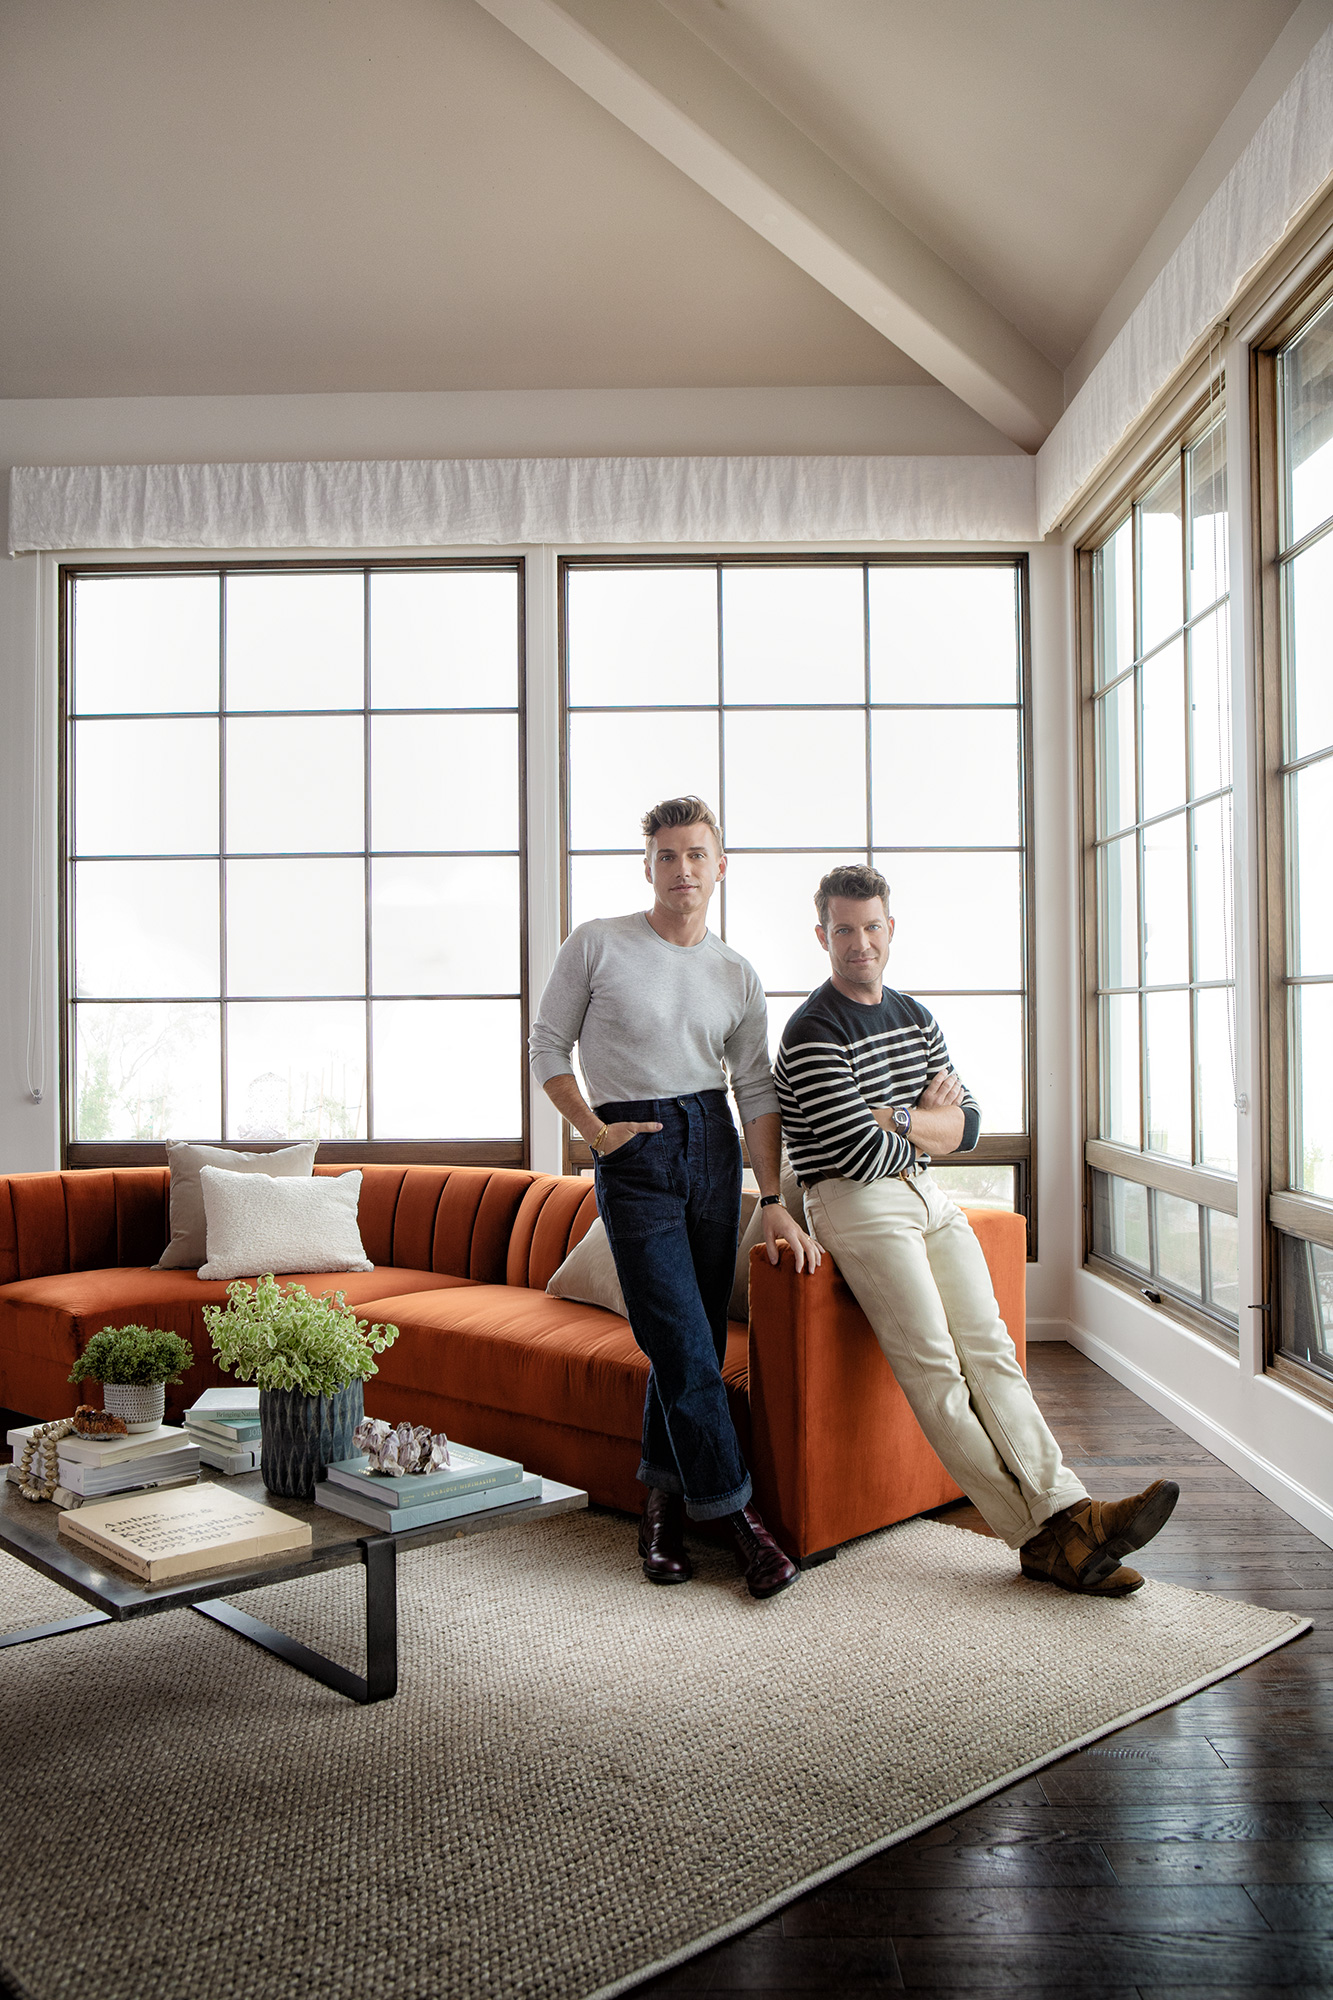 winter ping special marlton end table gold threshold nate berkus jeremiah brent living spaces target margate accent and debut furniture line inspired their own home modern